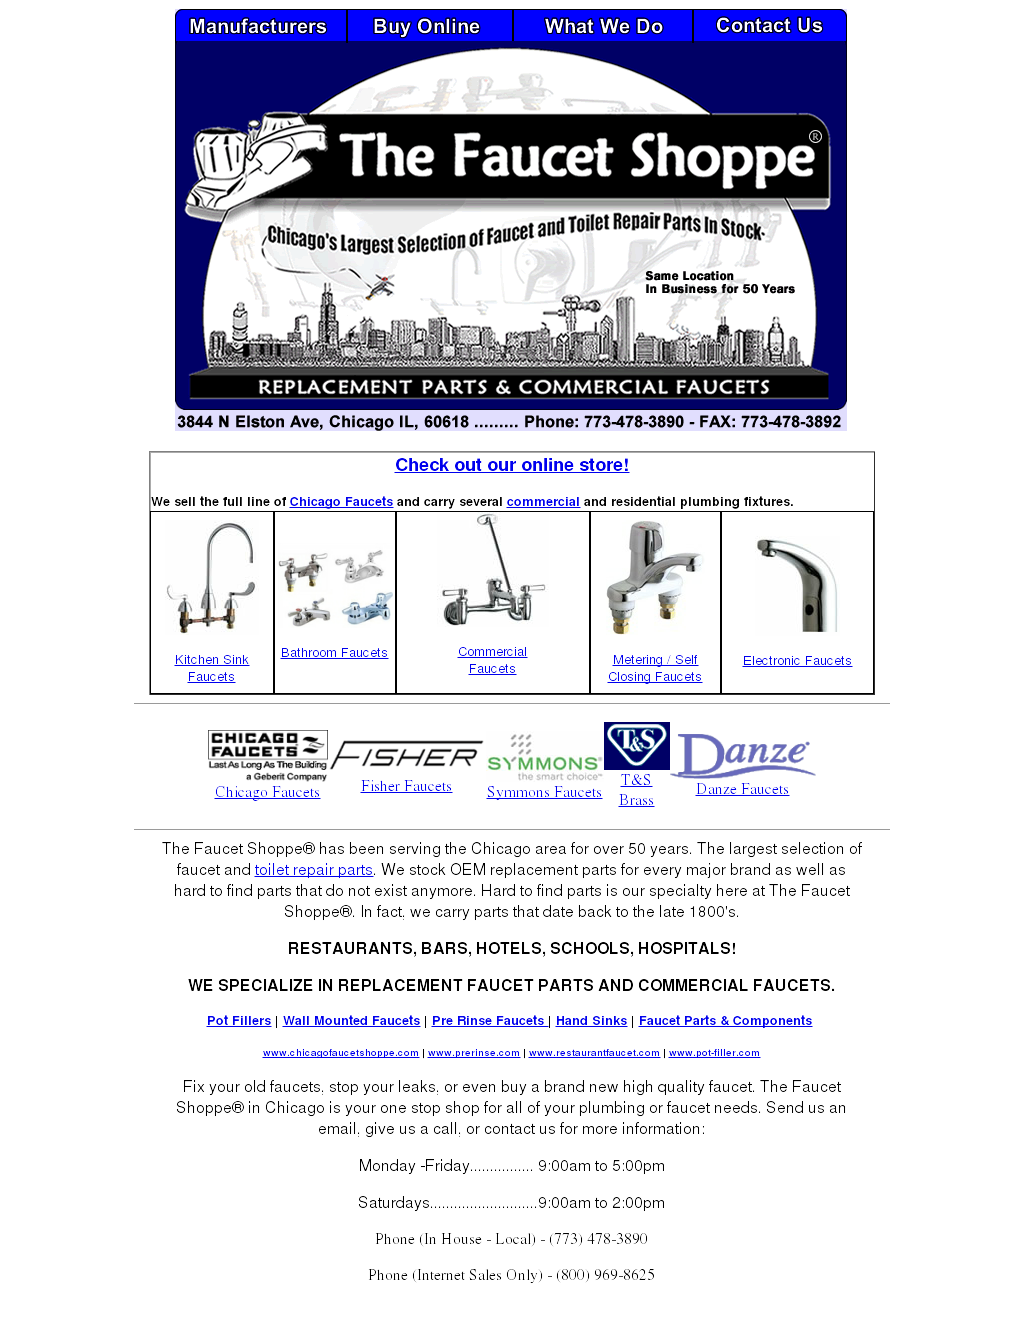 The Faucet Shoppe Competitors, Revenue and Employees - Owler Company ...